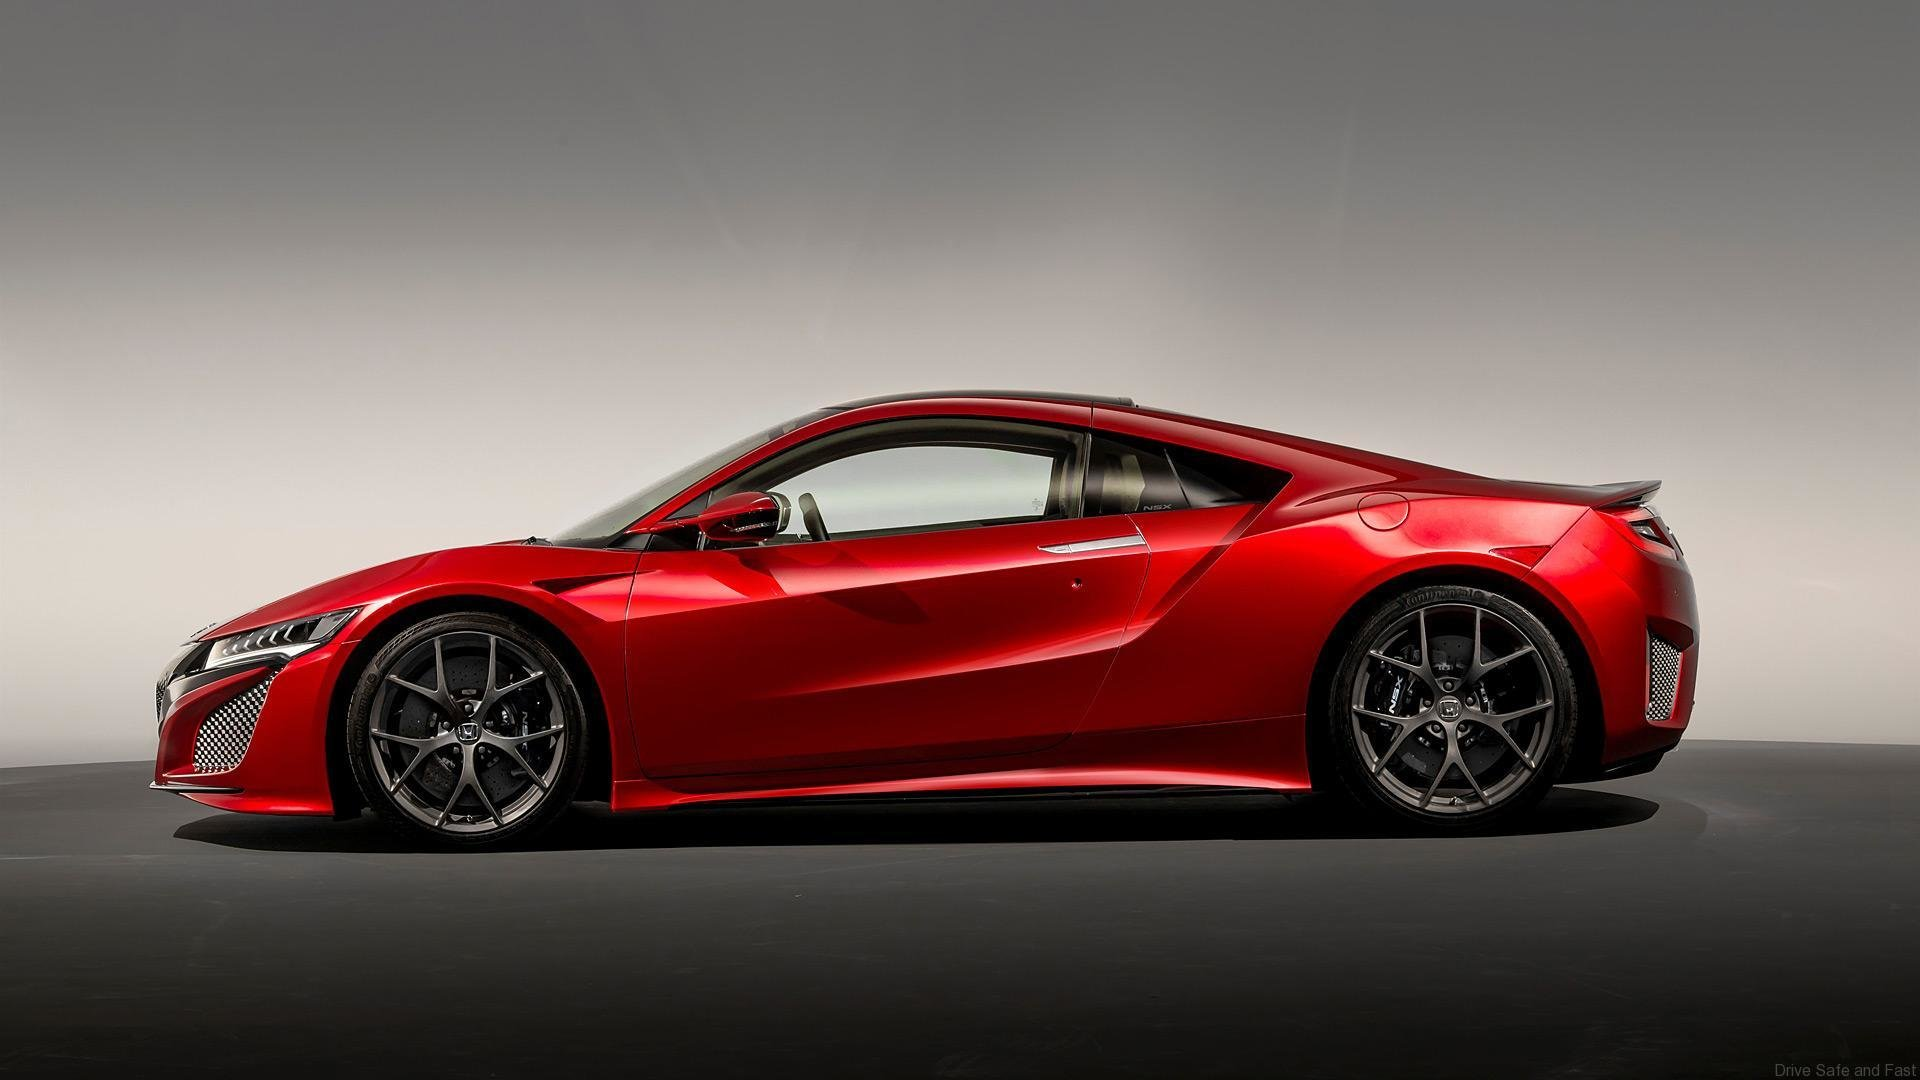 Latest Acura Nsx 2016 Hd Wallpapers Free Download